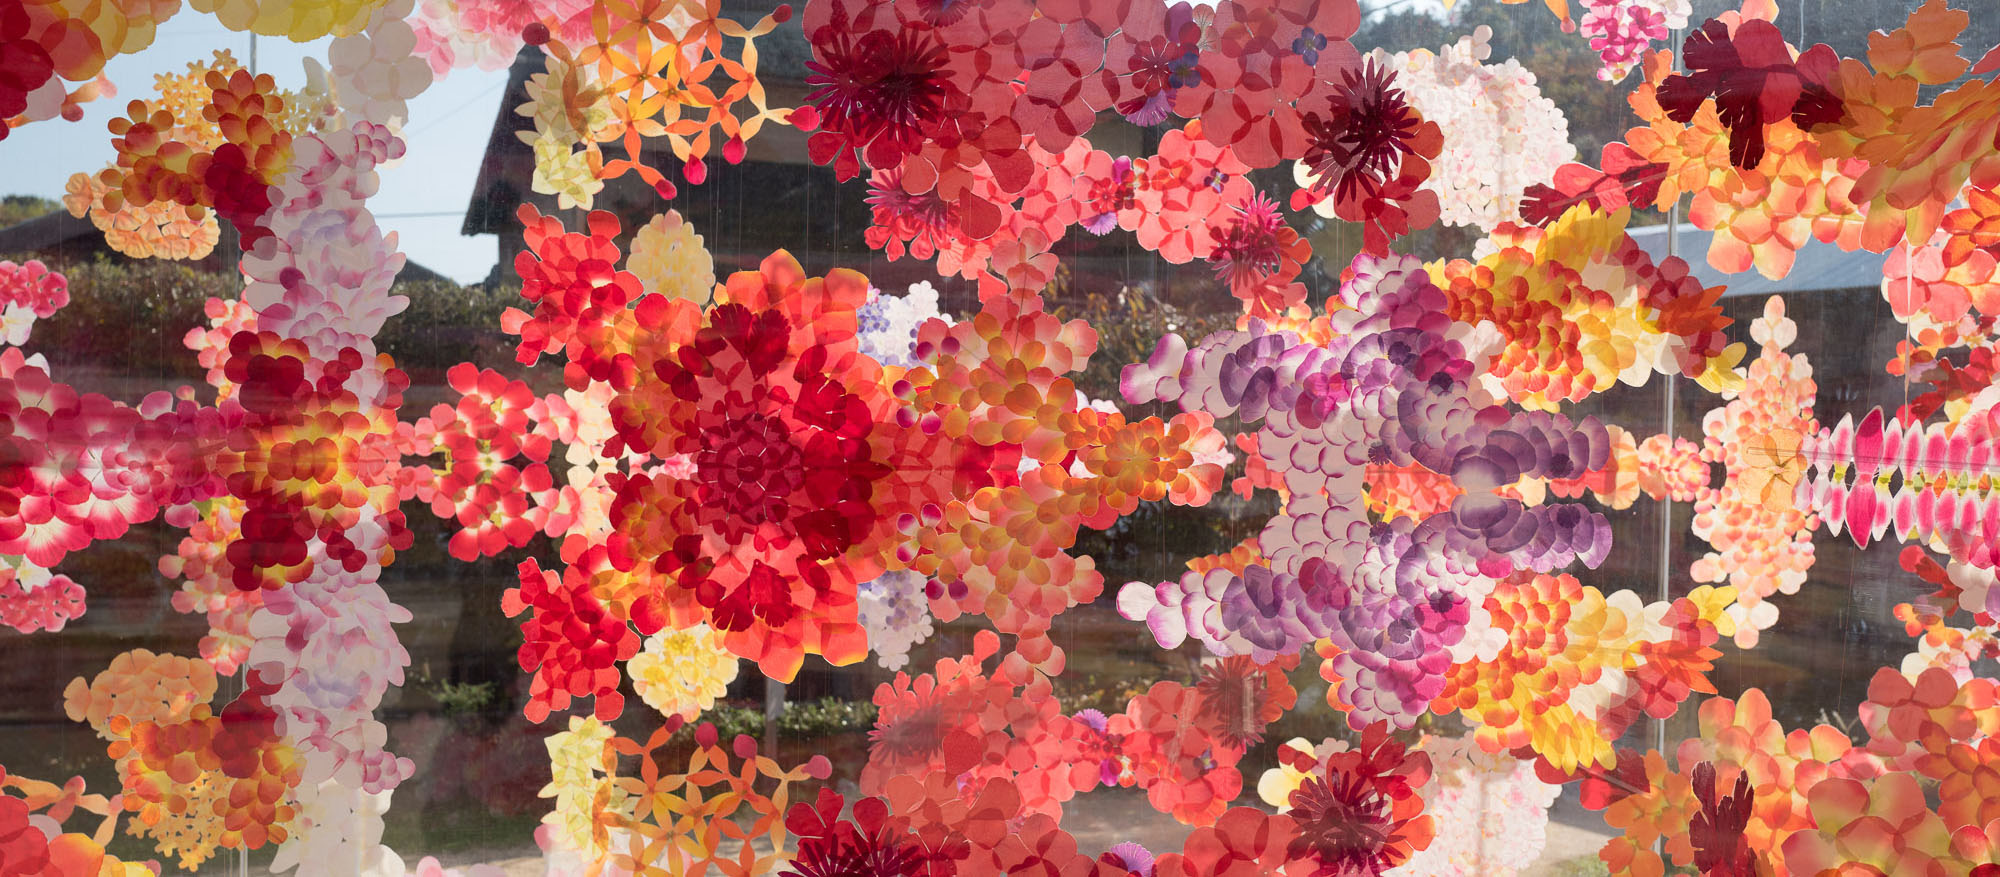 Colorful flower artwork sandwiched between layers of glass